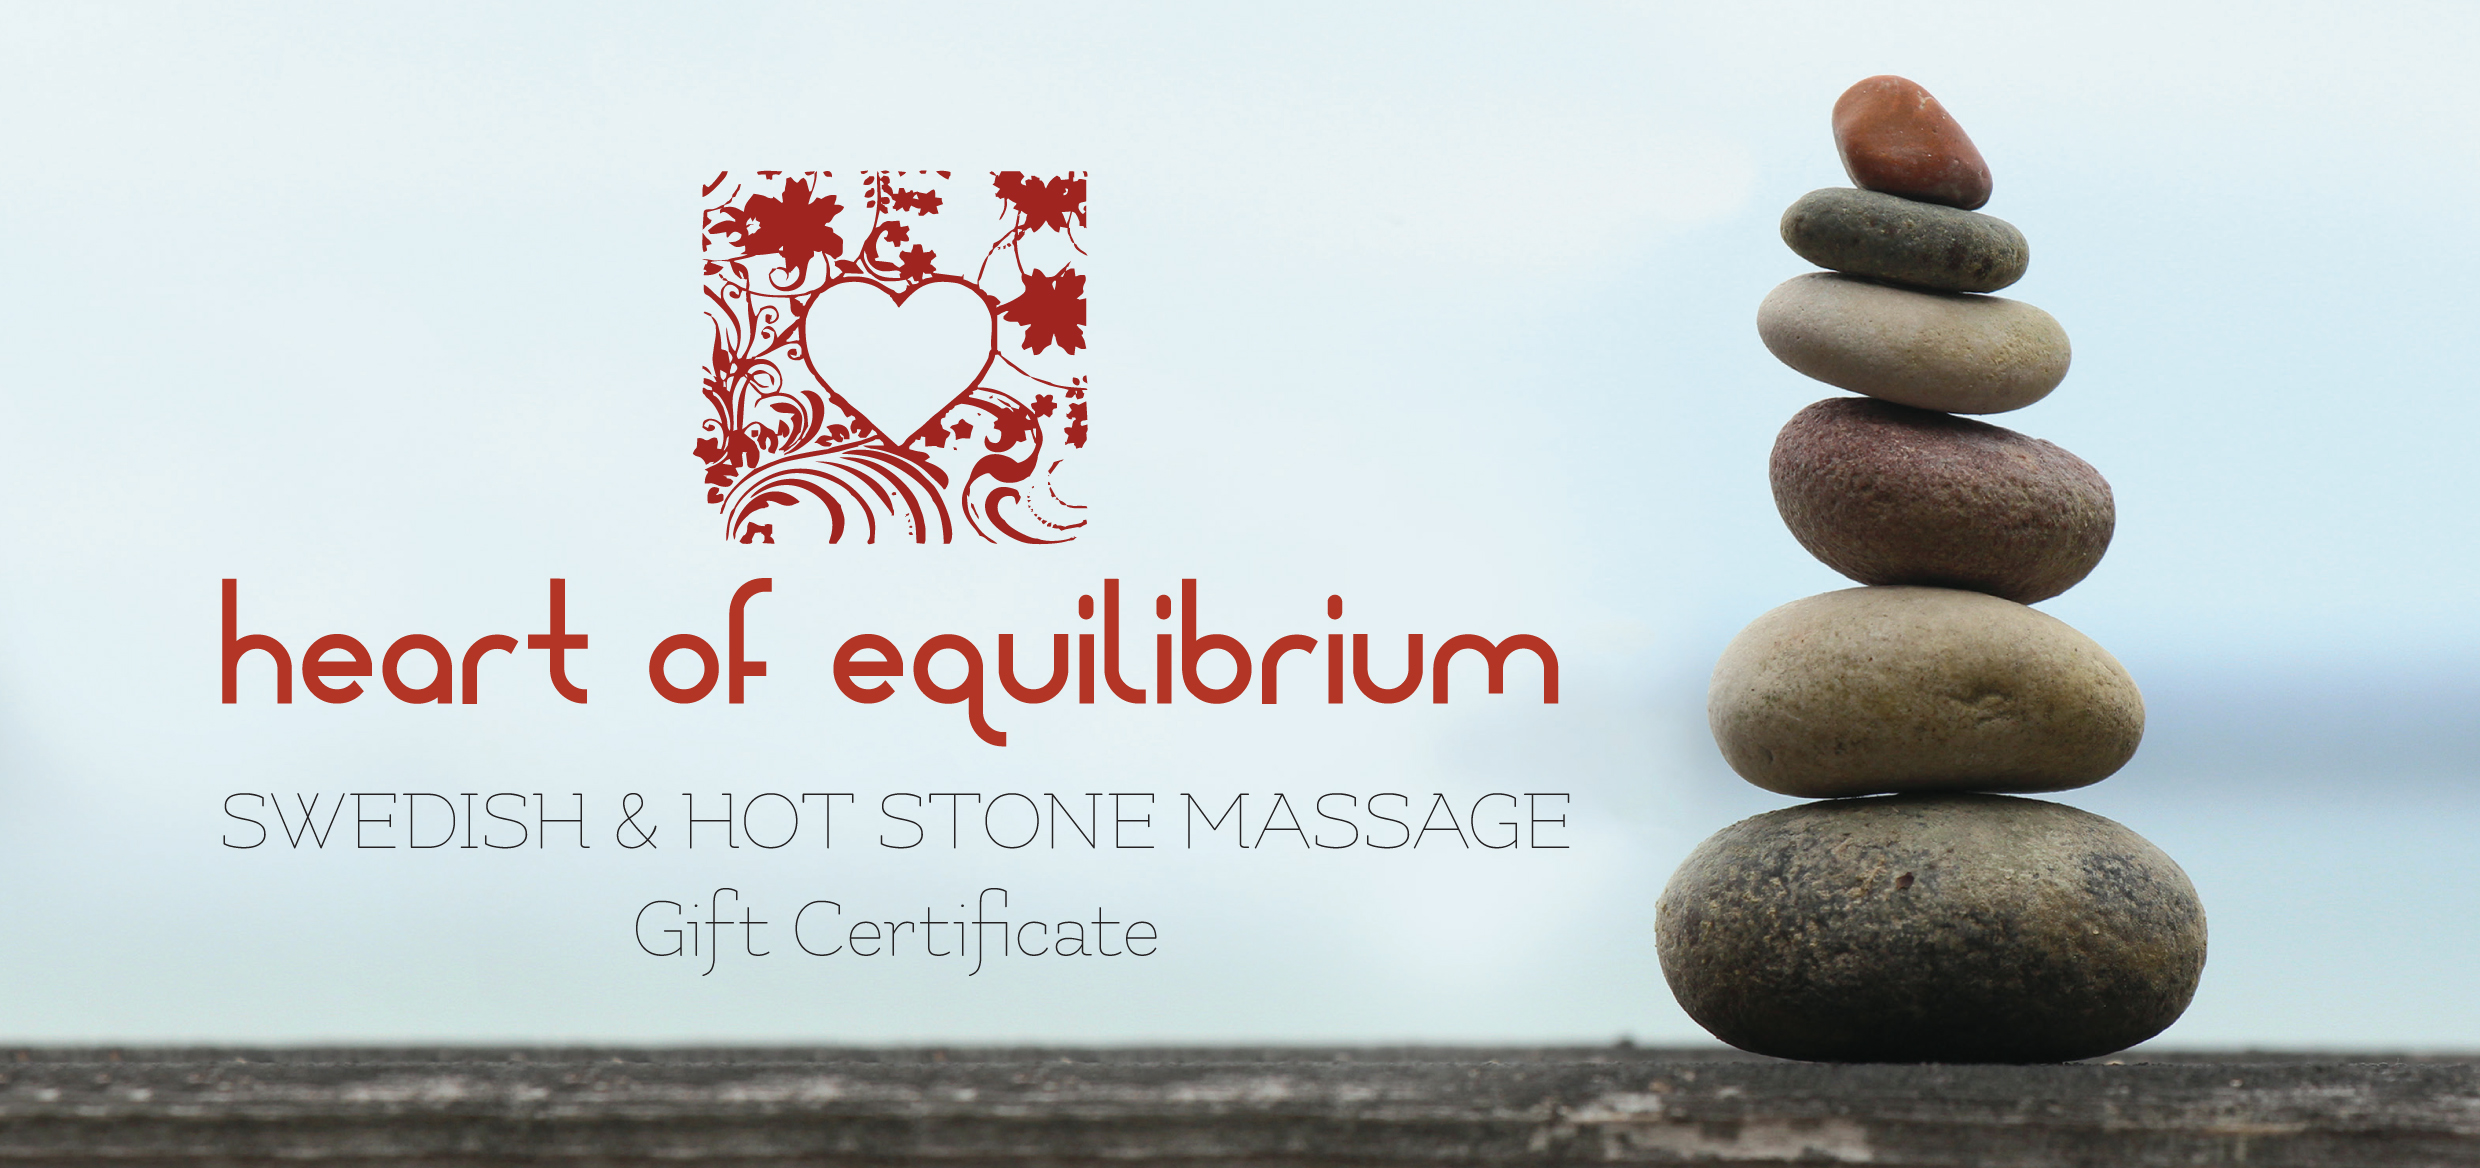 Gift Certificate Massage Front.